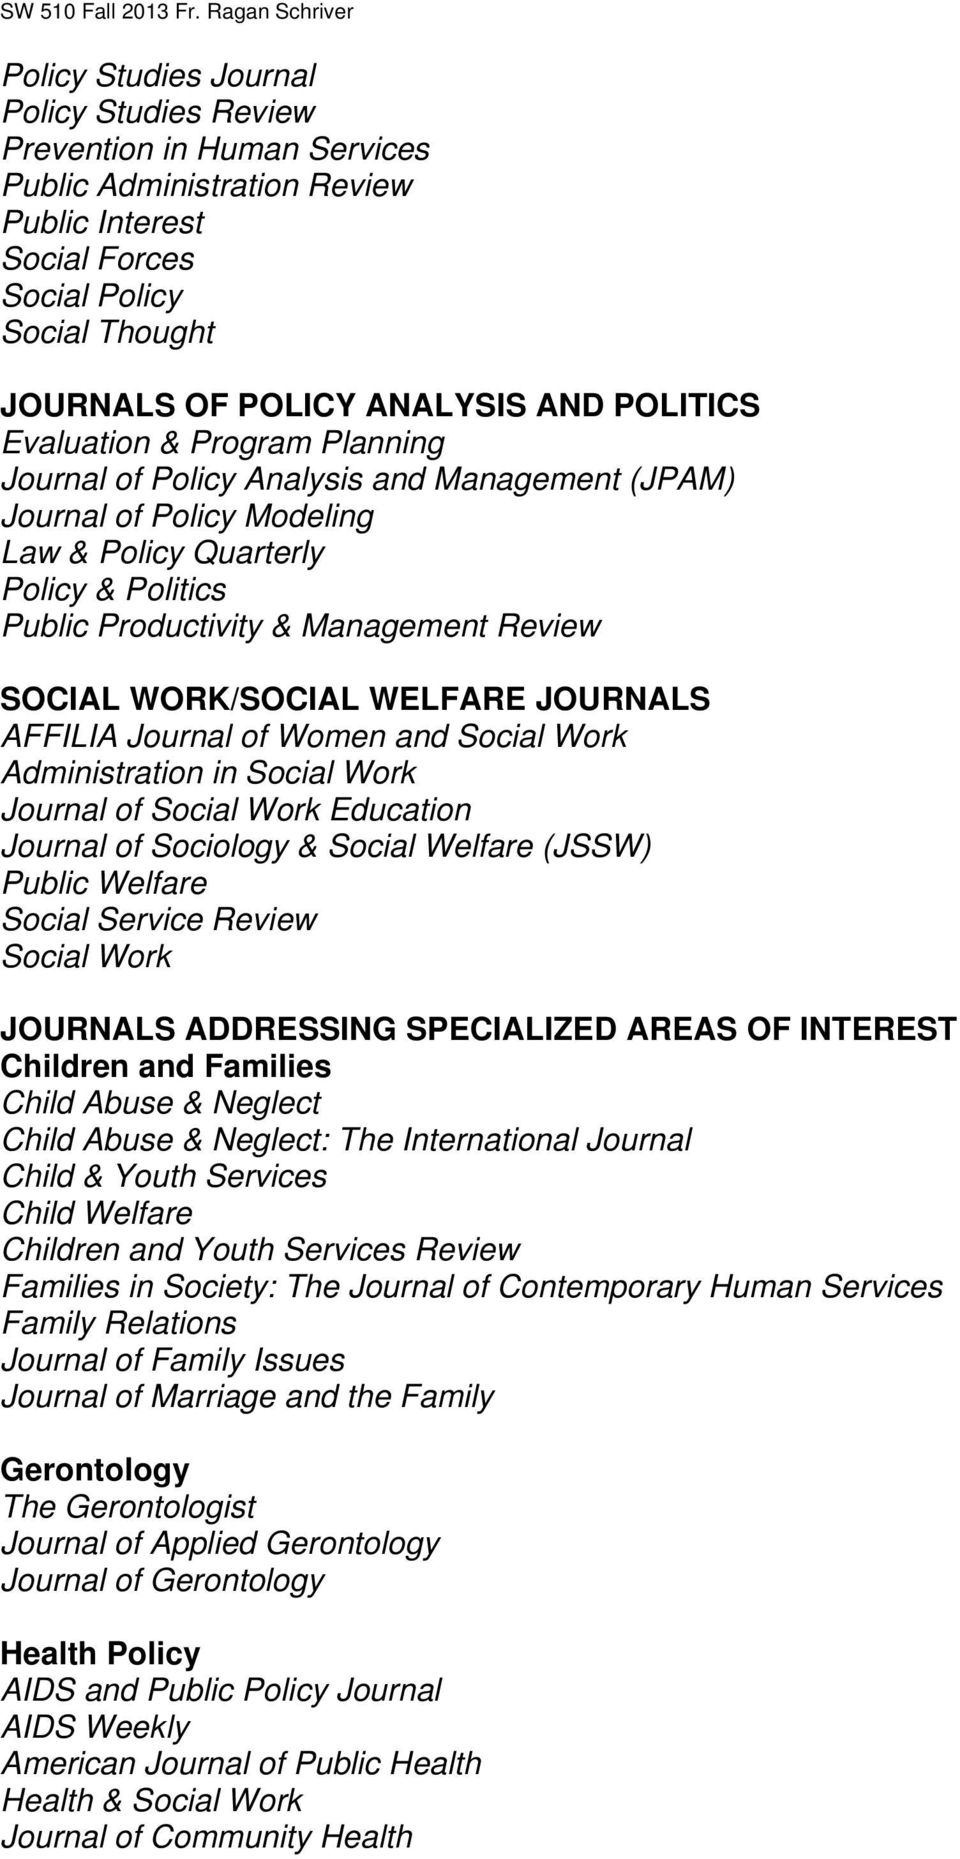 SOCIAL WORK/SOCIAL WELFARE JOURNALS AFFILIA Journal of Women and Social Work Administration in Social Work Journal of Social Work Education Journal of Sociology & Social Welfare (JSSW) Public Welfare